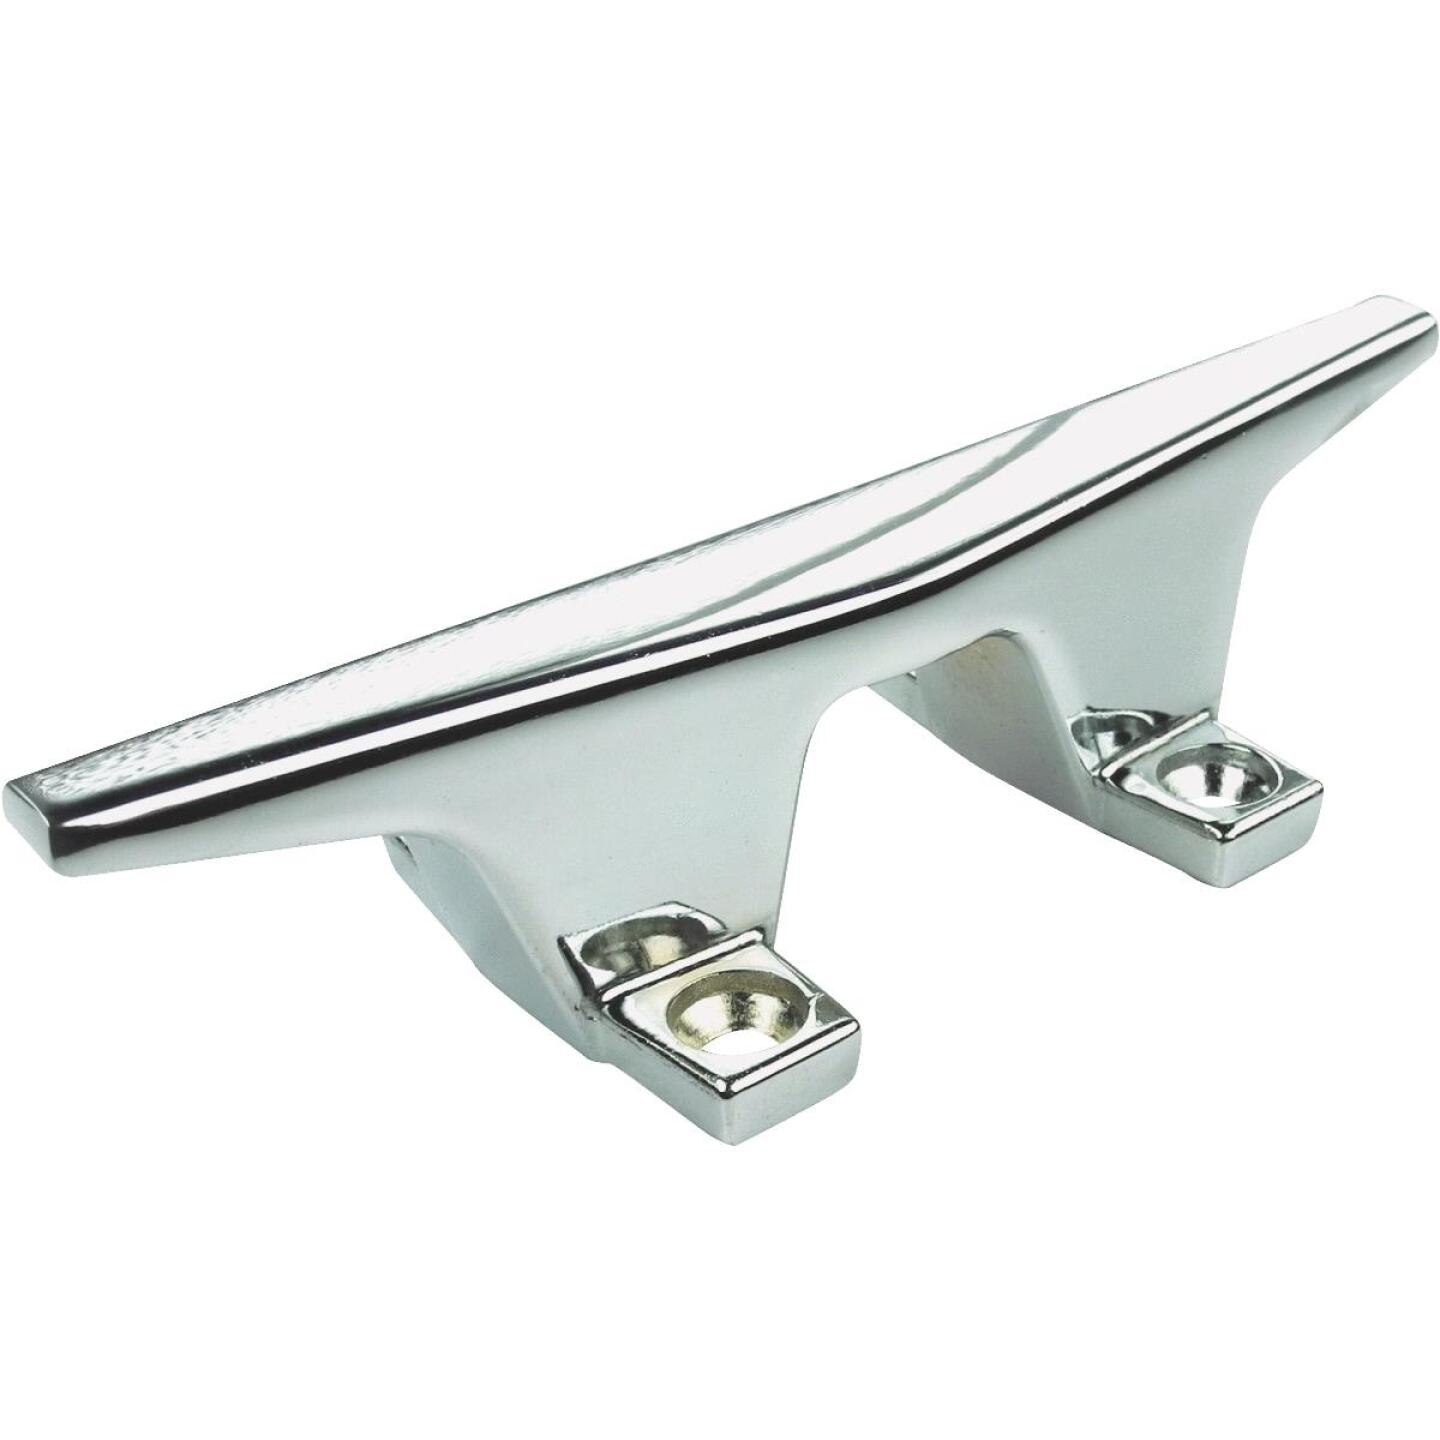 Seachoice 6 In. Zinc Hollow Base Cleat Image 1